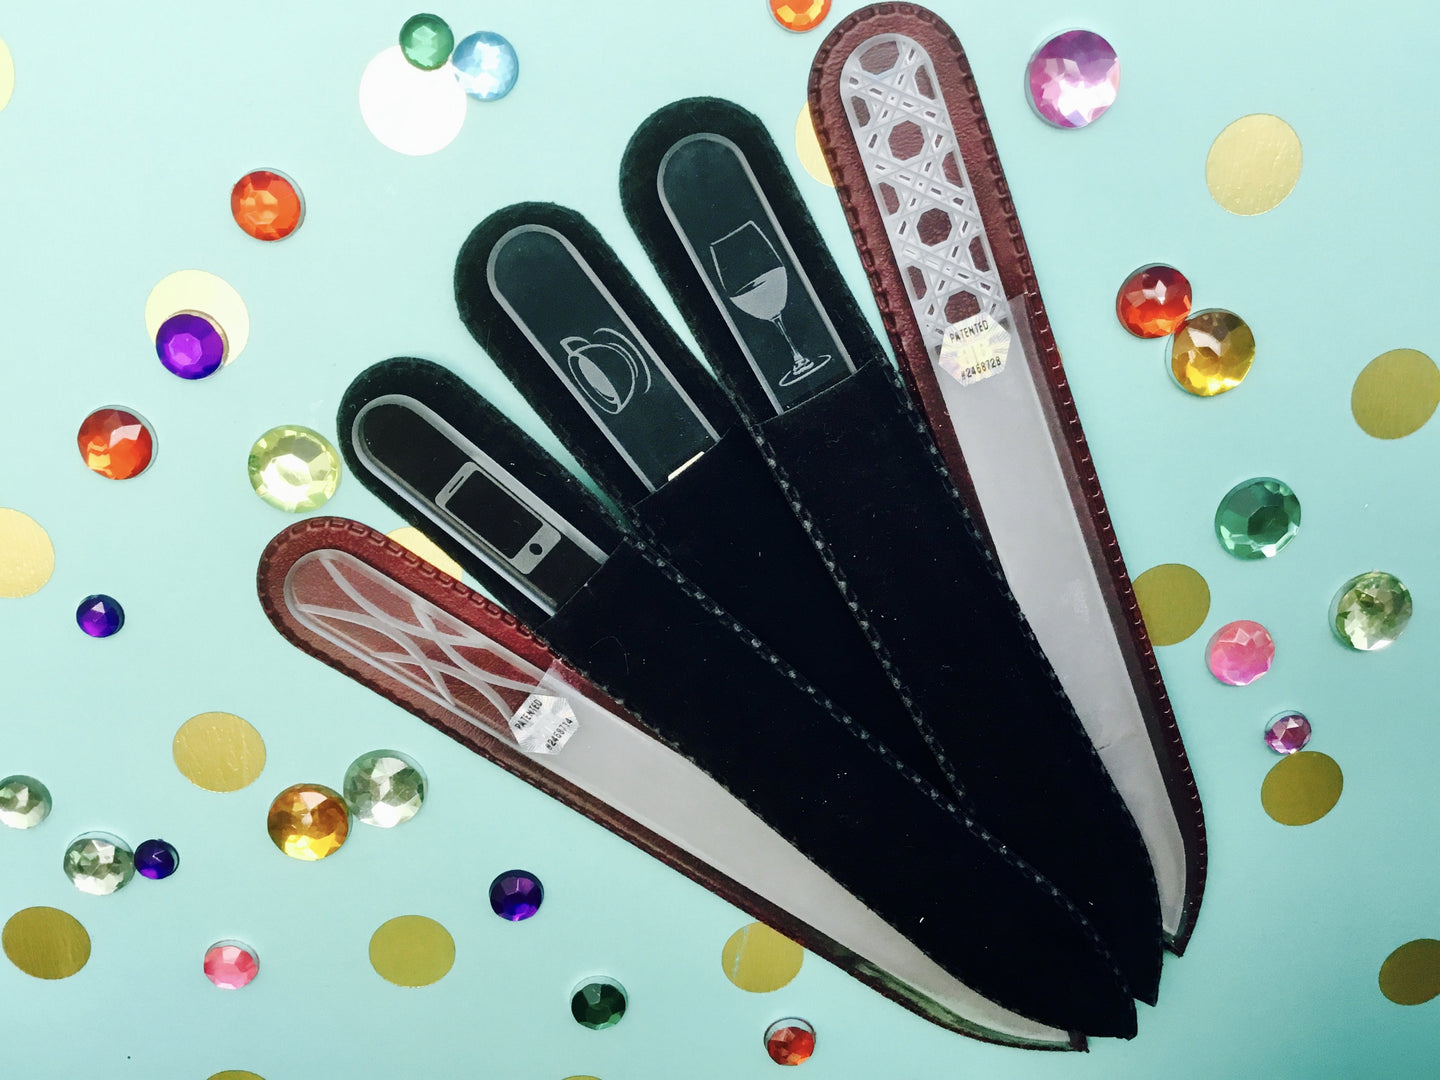 Decorated Specials & Collections - Top Notch Nail Files